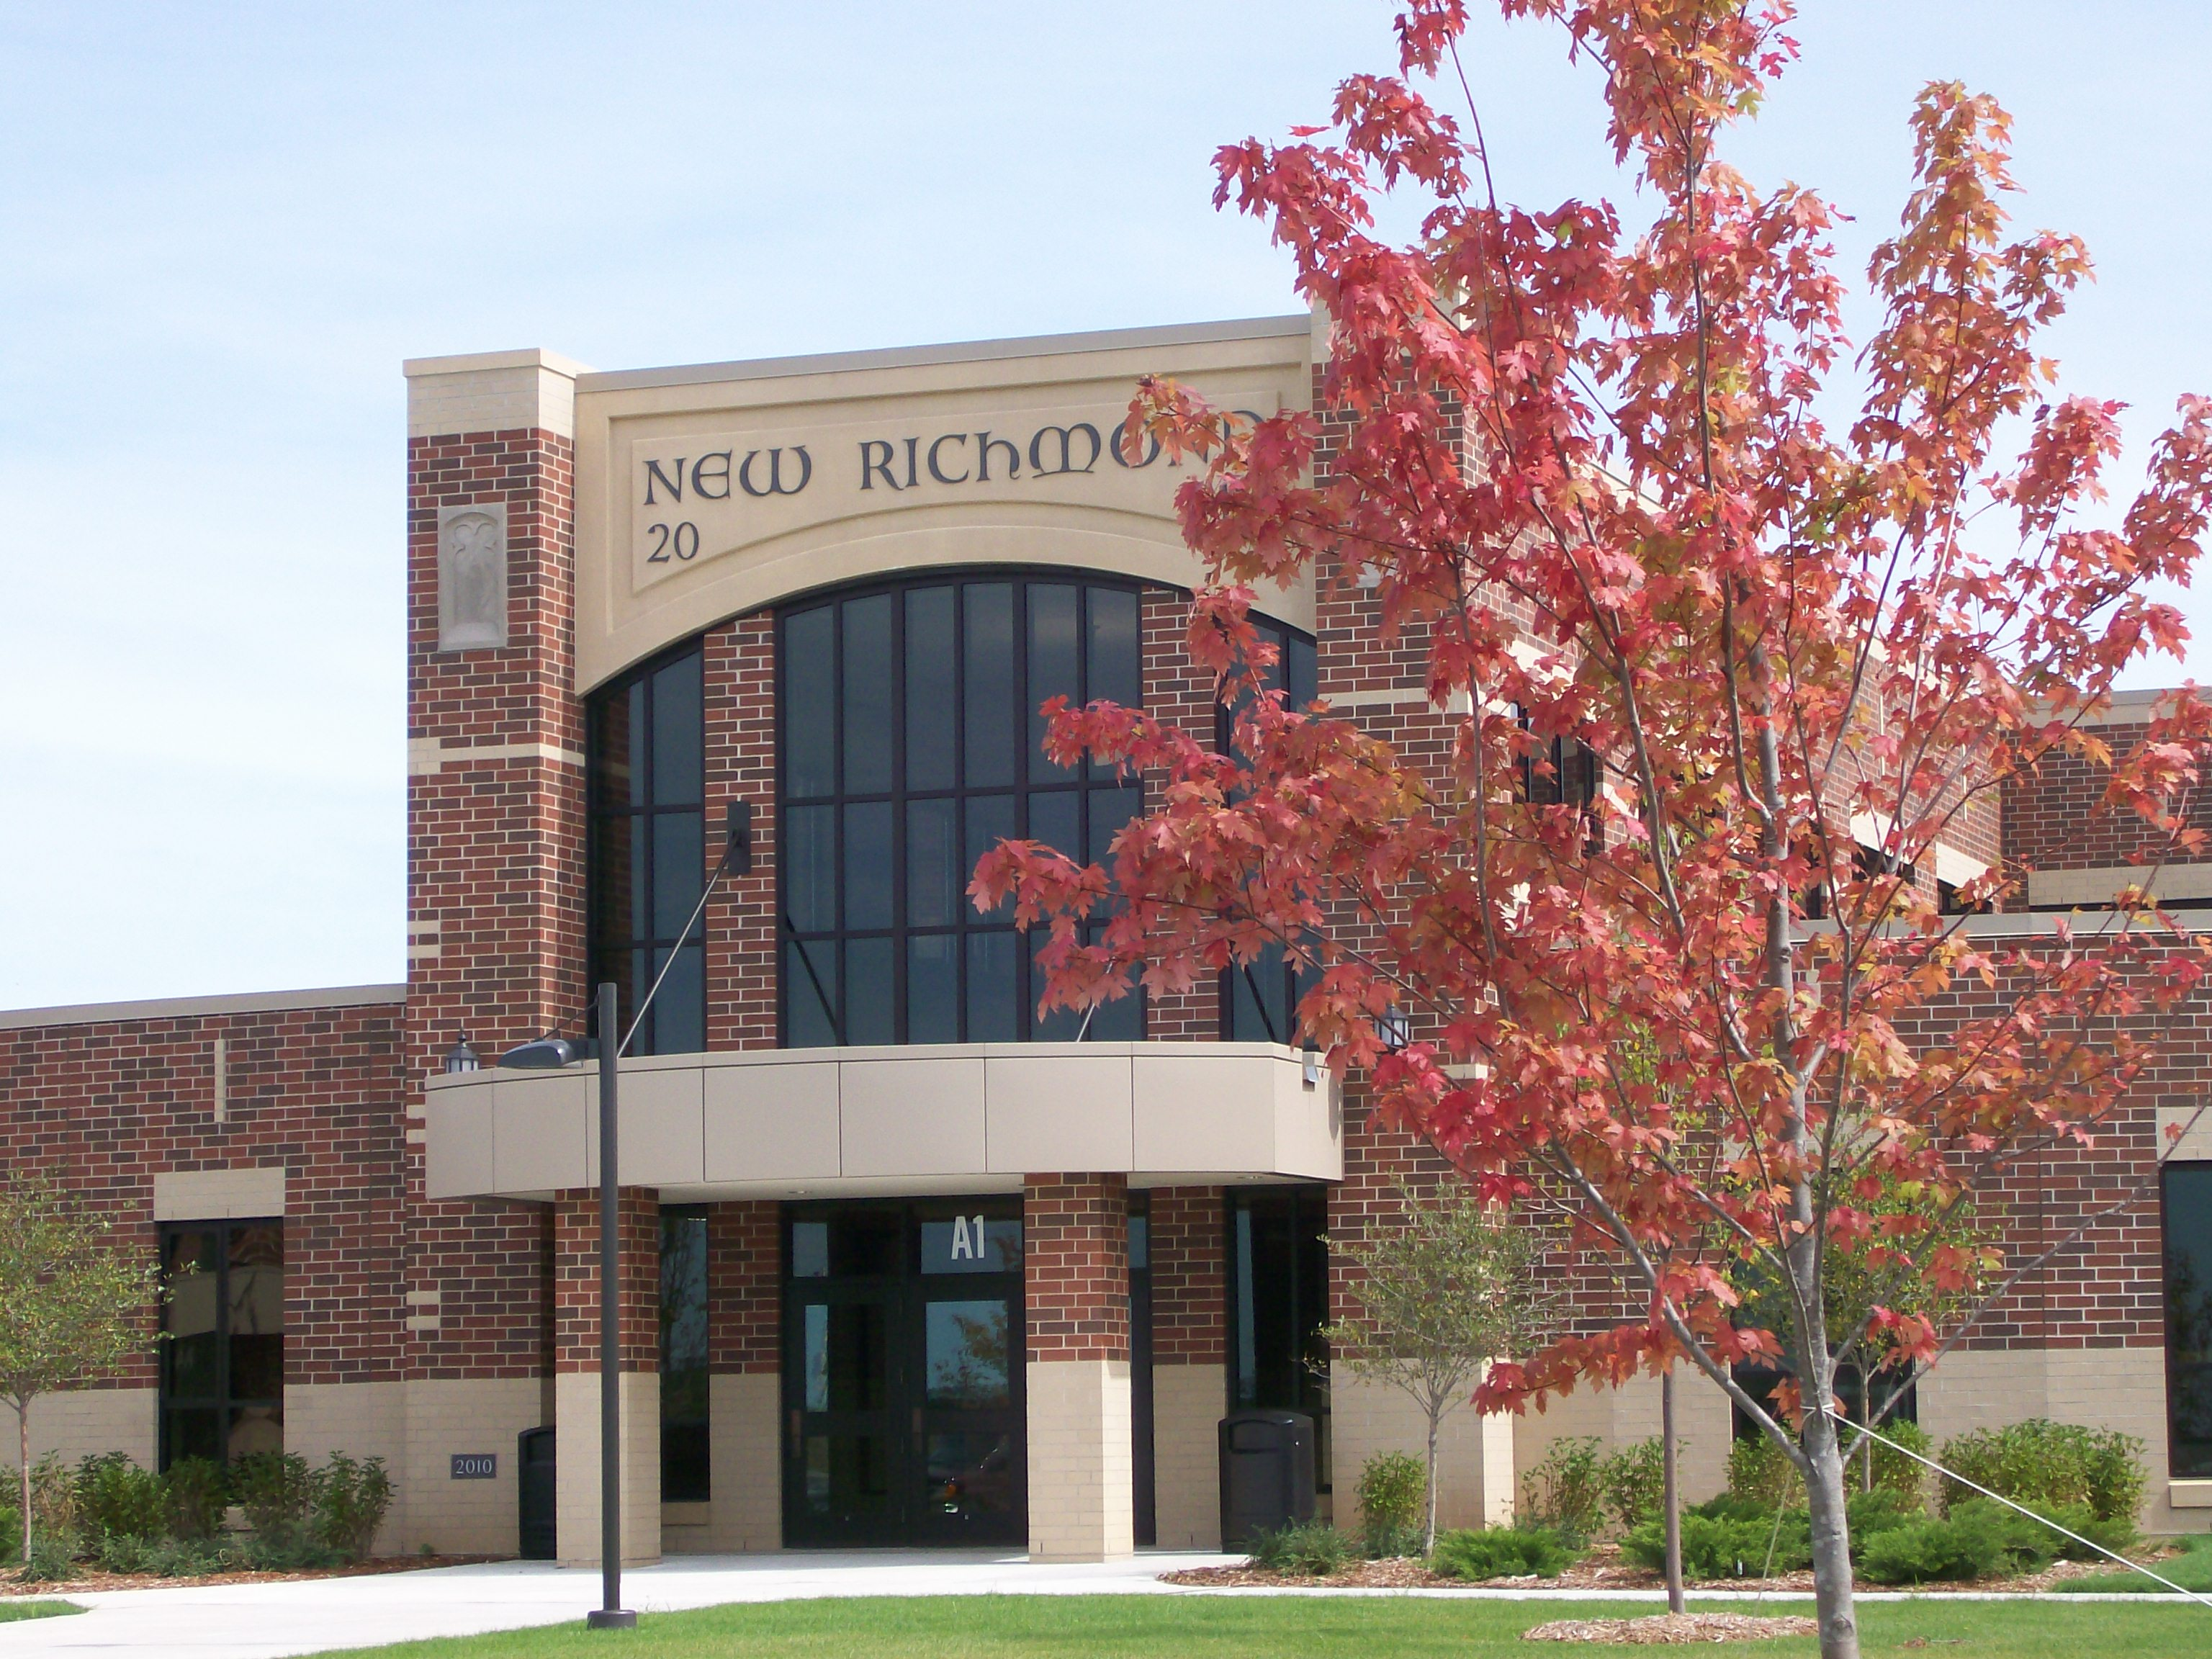 New Richmond, Wisconsin High School